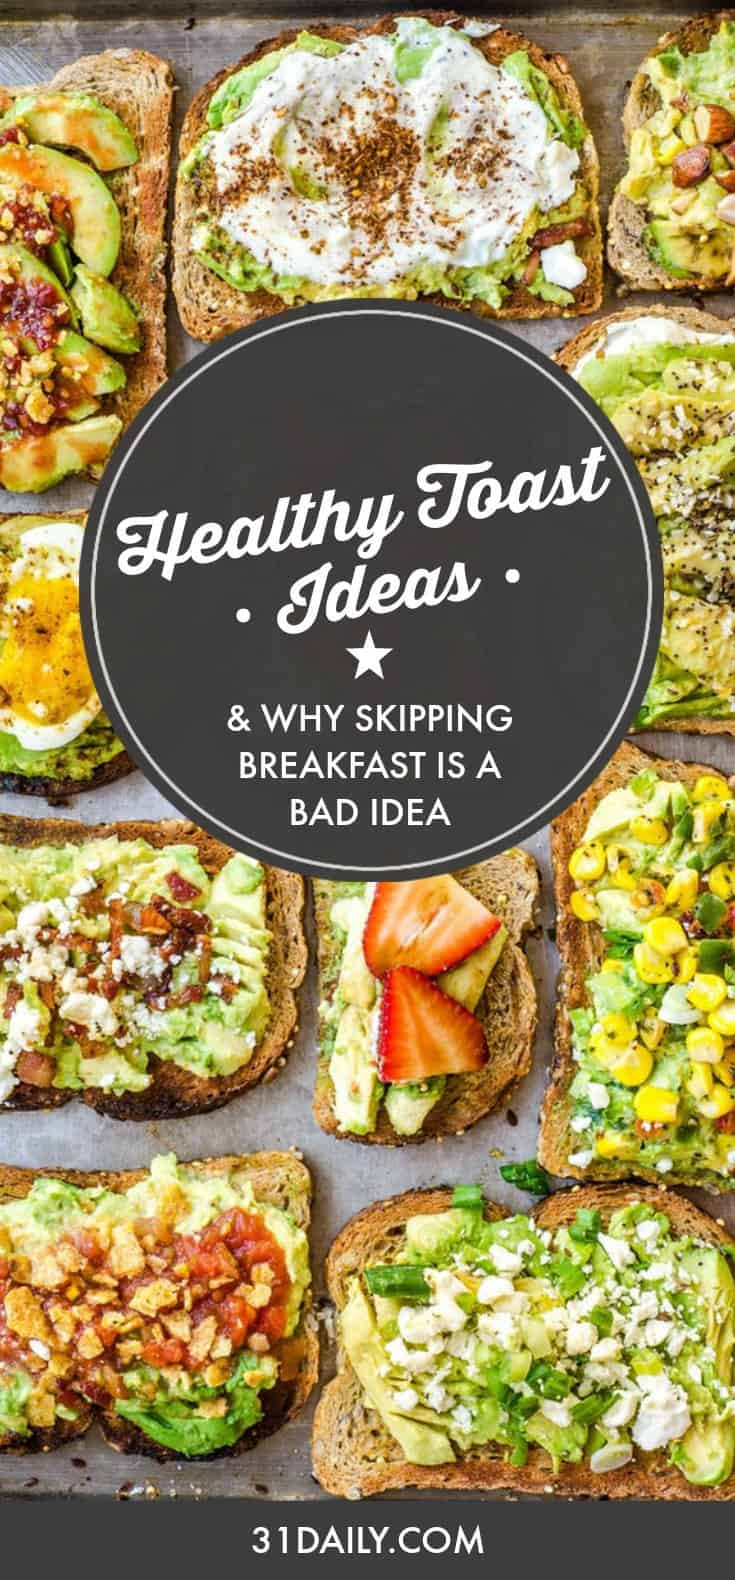 Healthy Toast Ideas and Why Skipping Breakfast is a Really Bad Idea | 31Daily.com